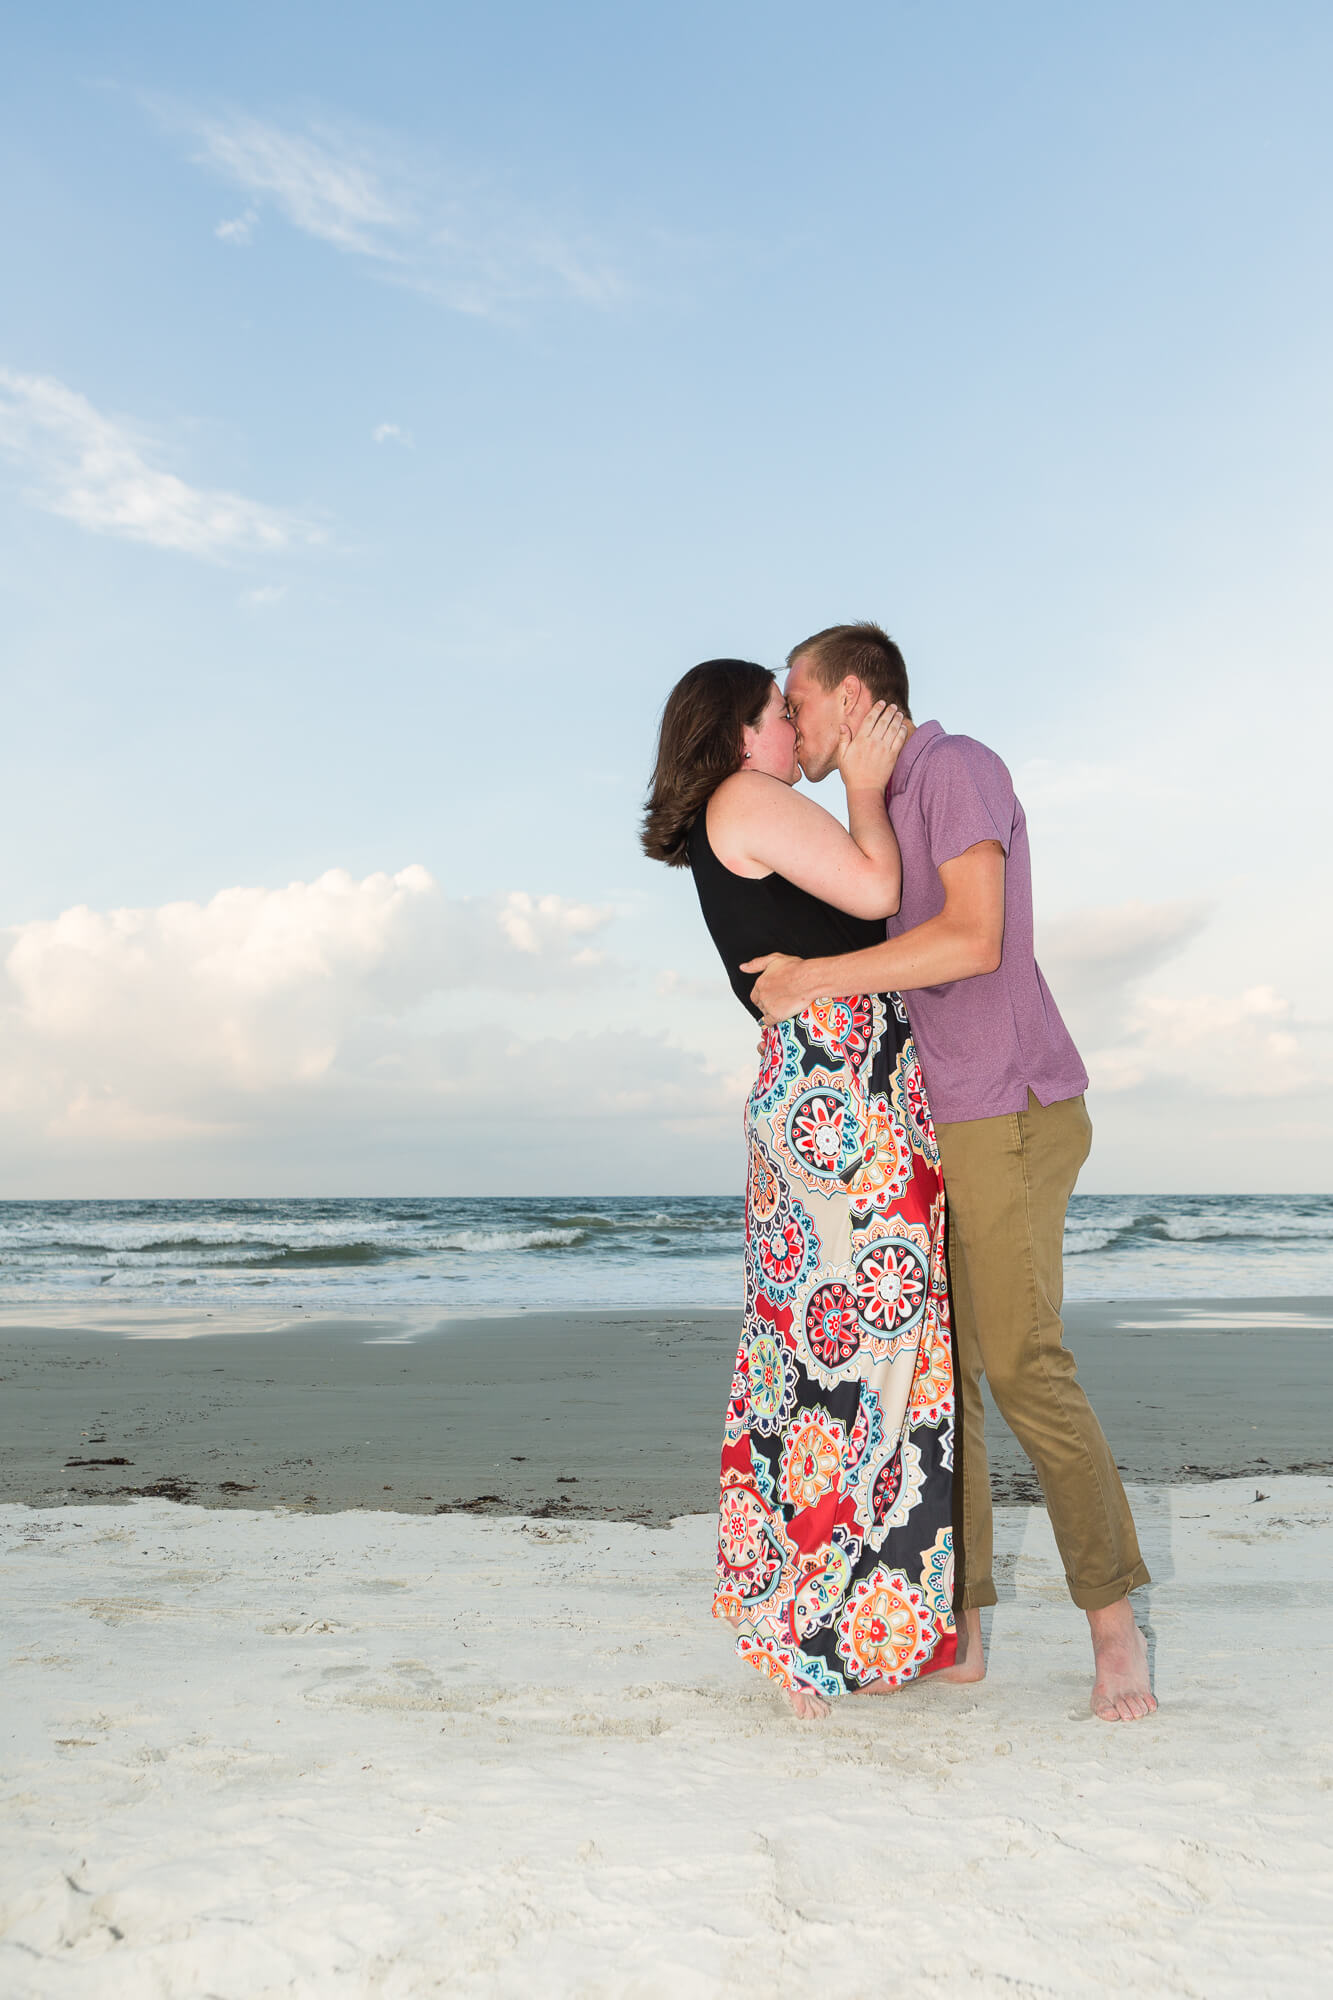 new-smyrna-beach-proposal-16.jpg